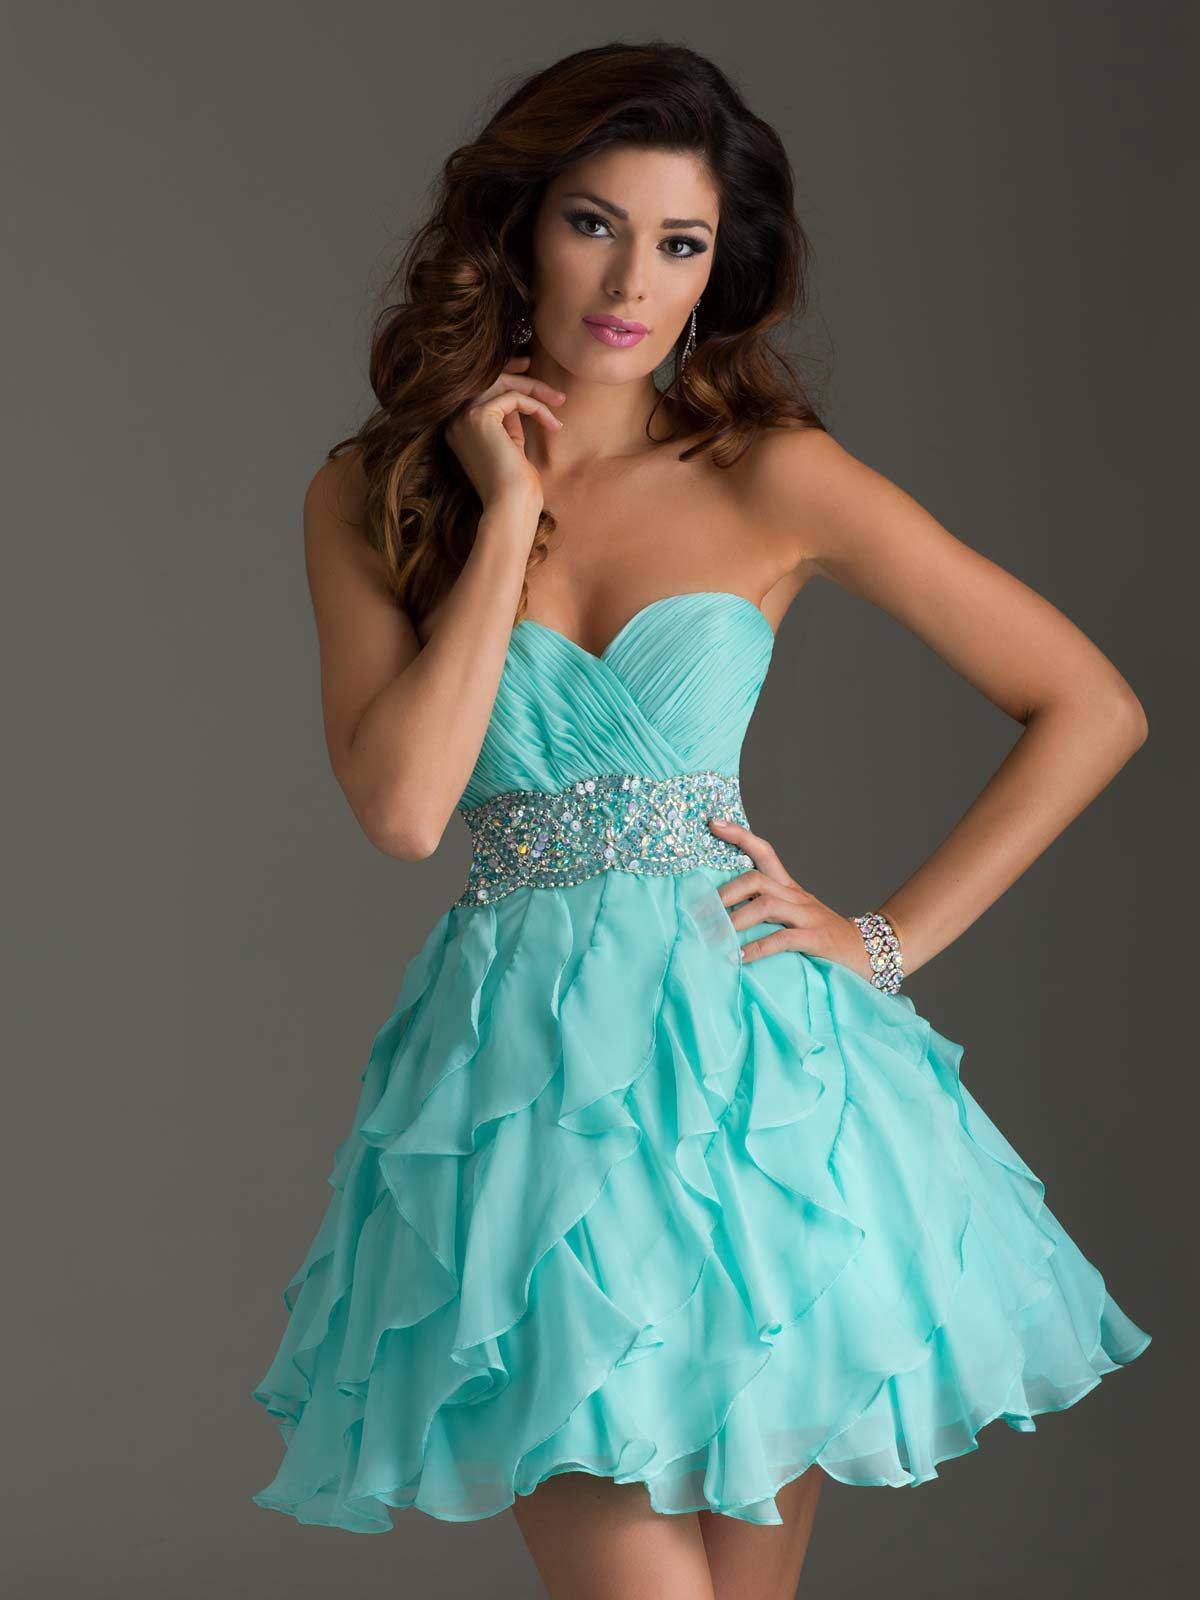 2460 Clarisse Homecoming Dress | Homecoming dresses, Homecoming and Prom